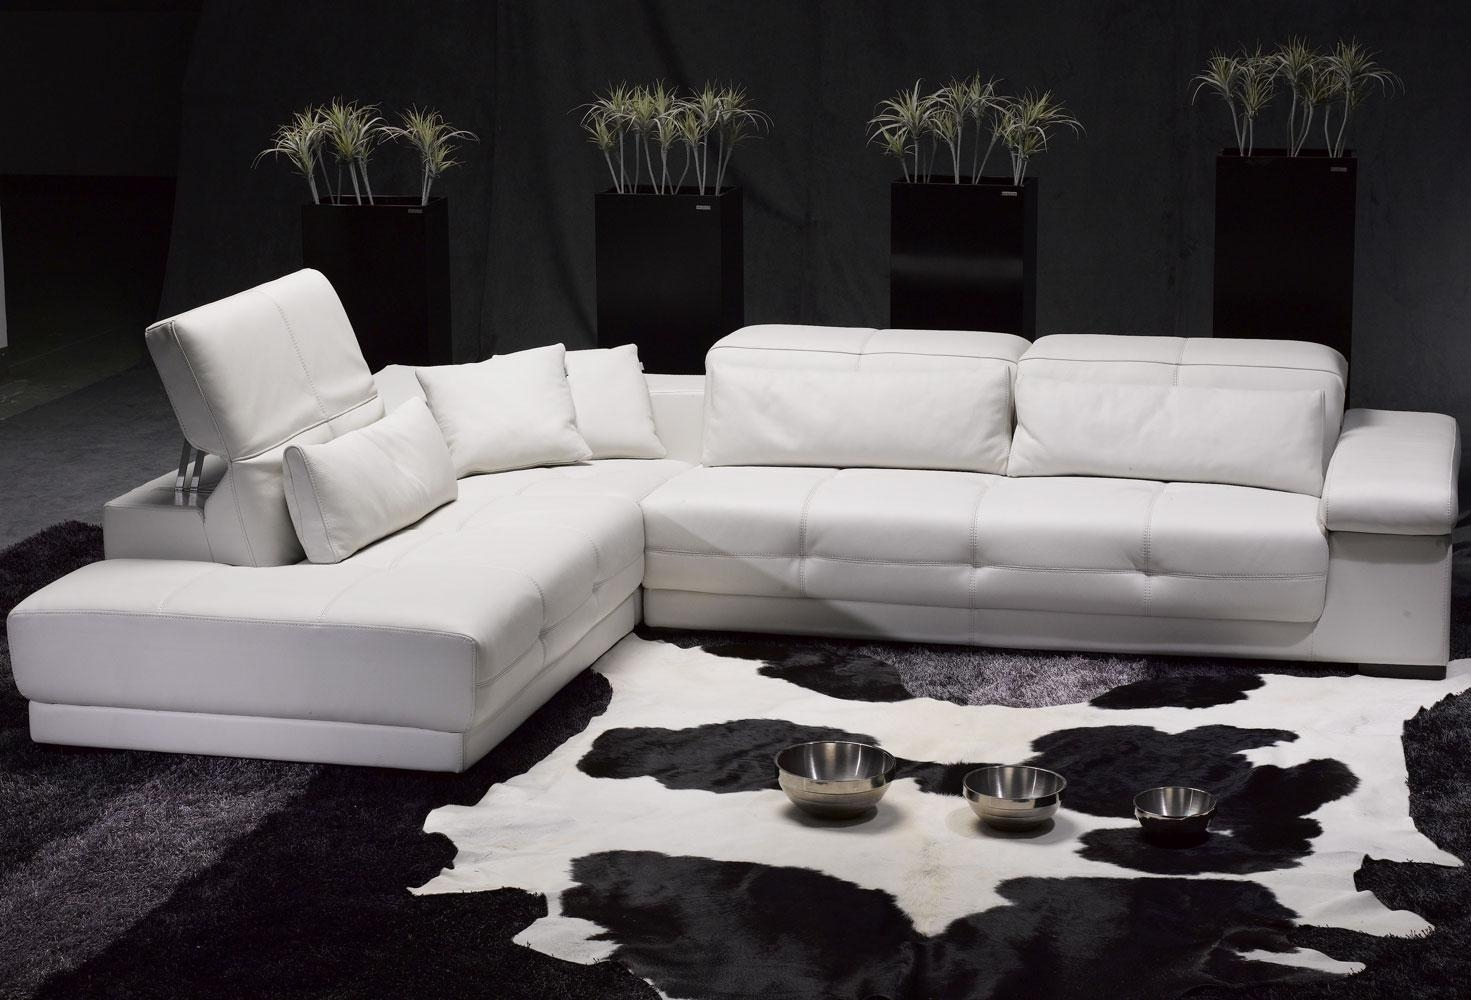 White Leather Sectional Sofa Ikea – S3Net – Sectional Sofas Sale With Regard To White Sectional Sofa For Sale (Image 18 of 21)